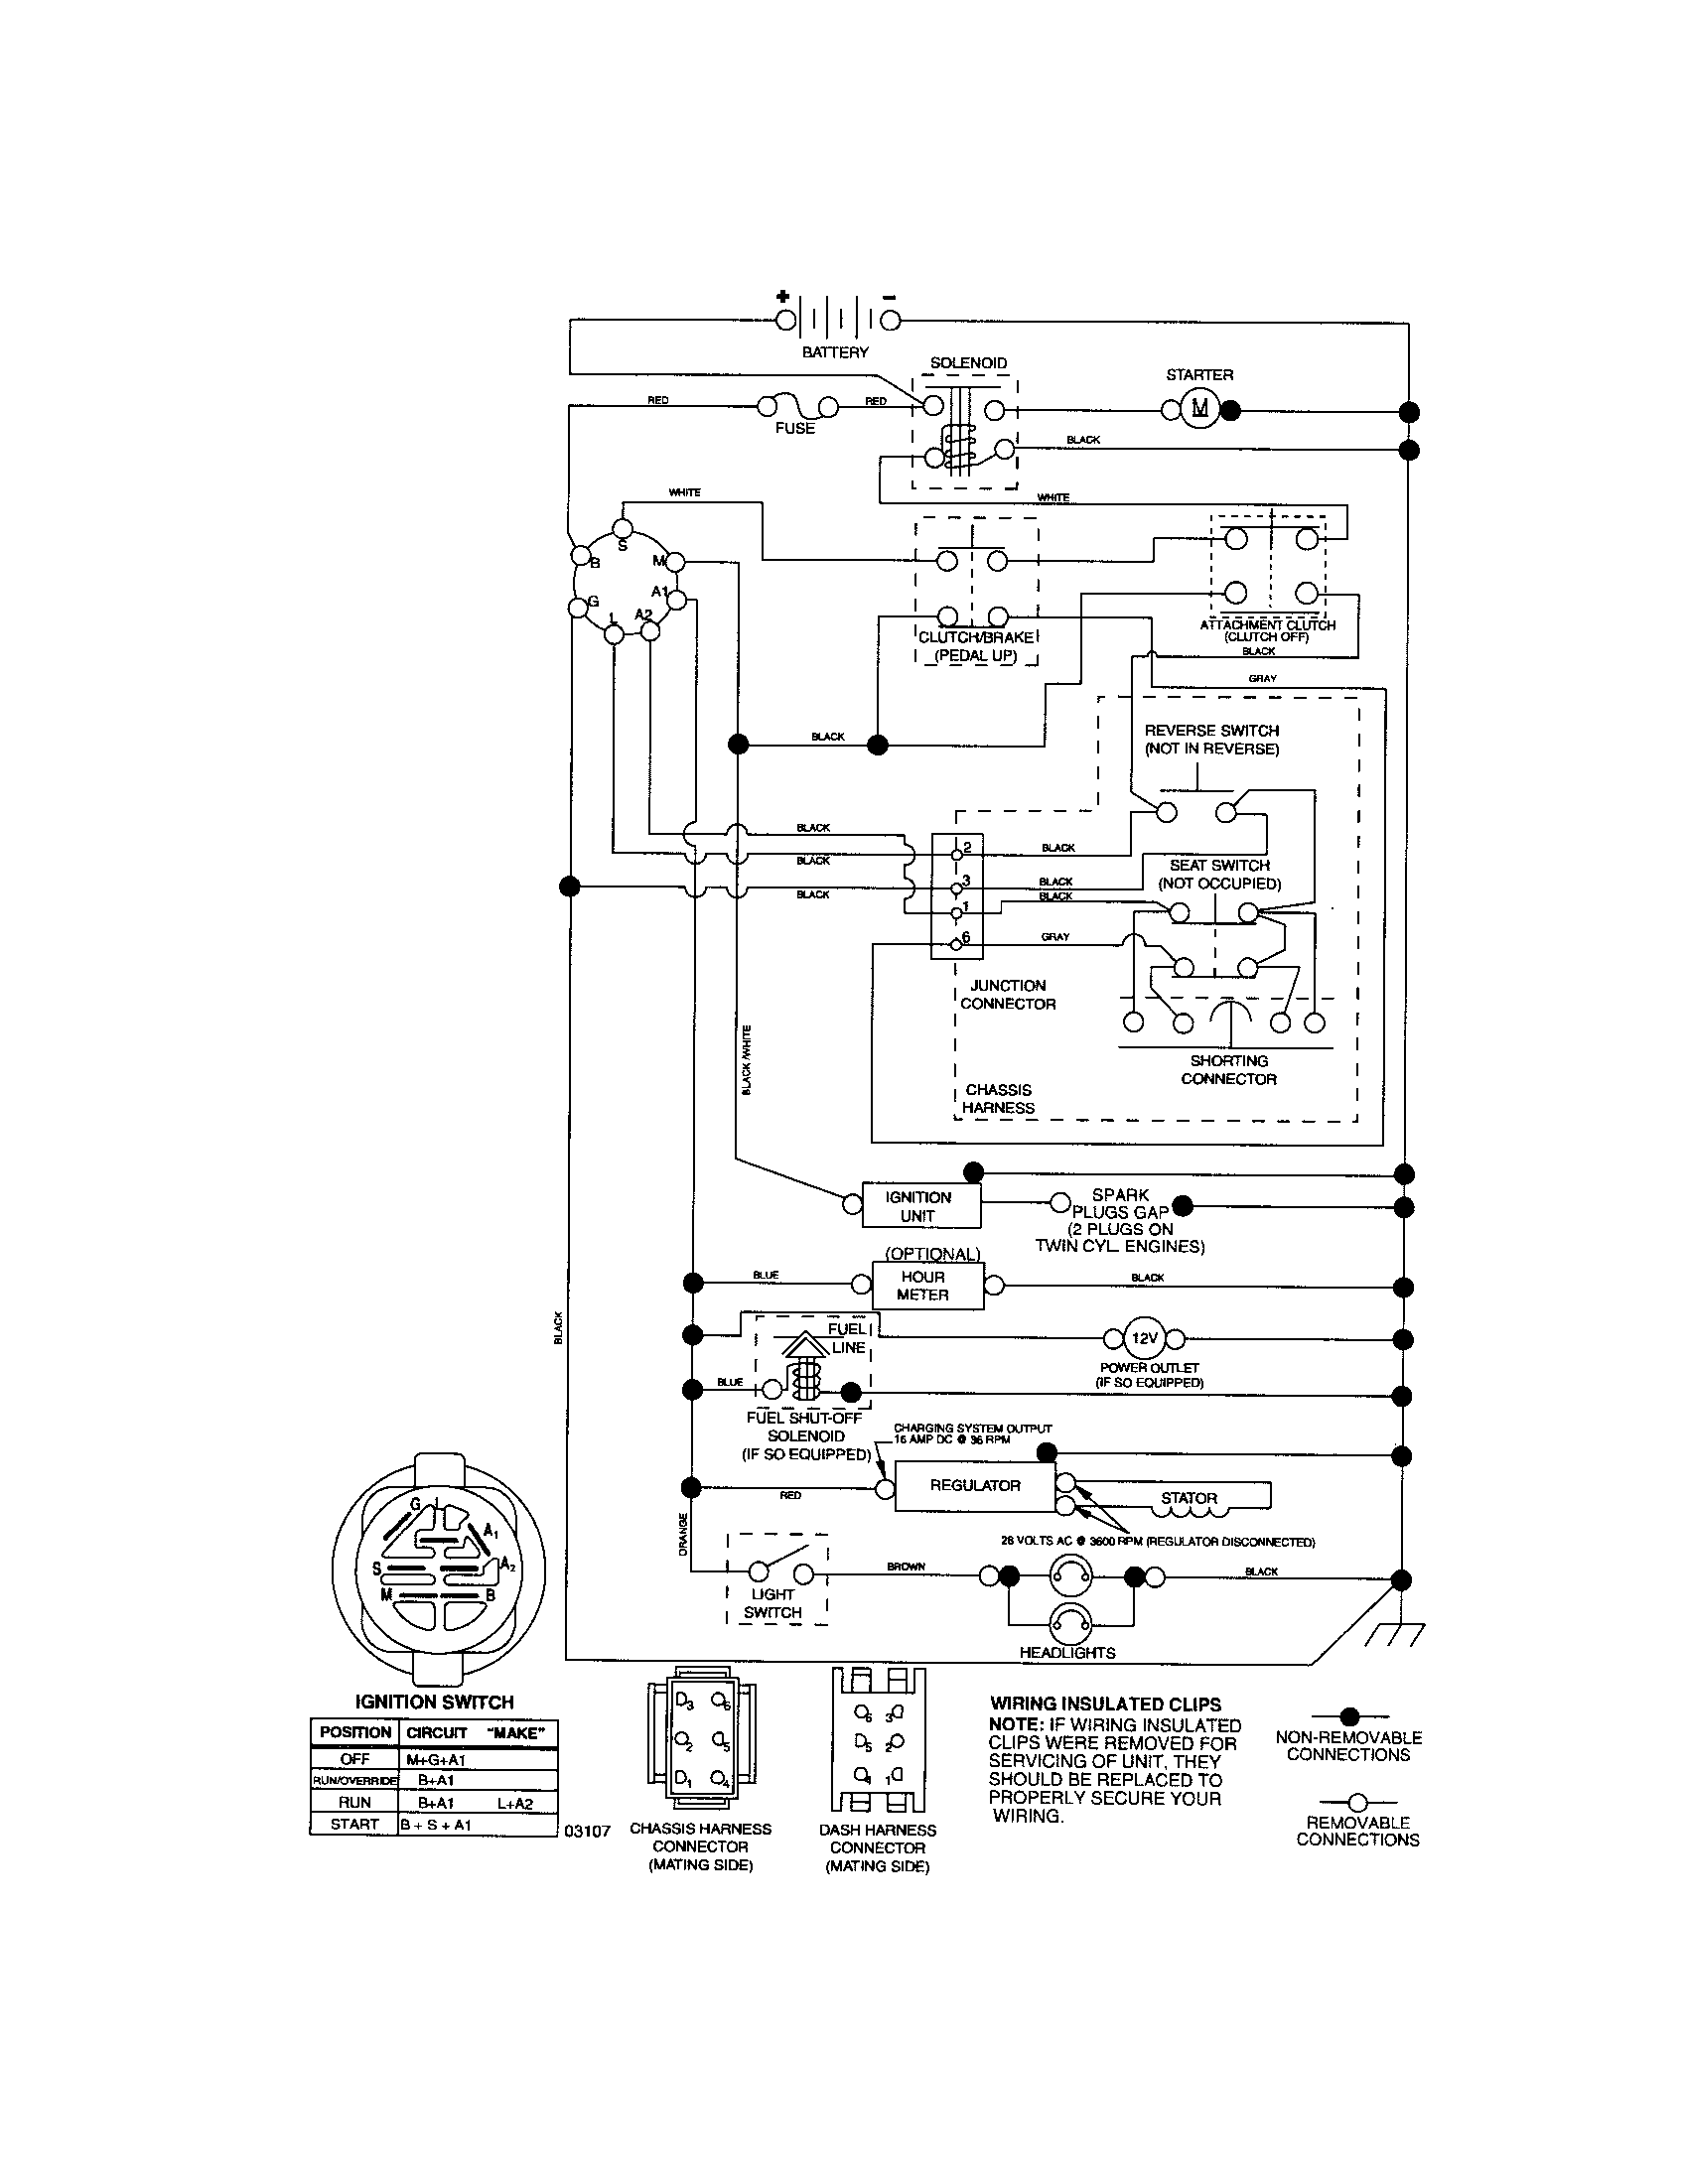 6af5f1447fd13c8443376822ddc1e105 craftsman riding mower electrical diagram wiring diagram wiring diagram for mtd riding lawn mower at bayanpartner.co